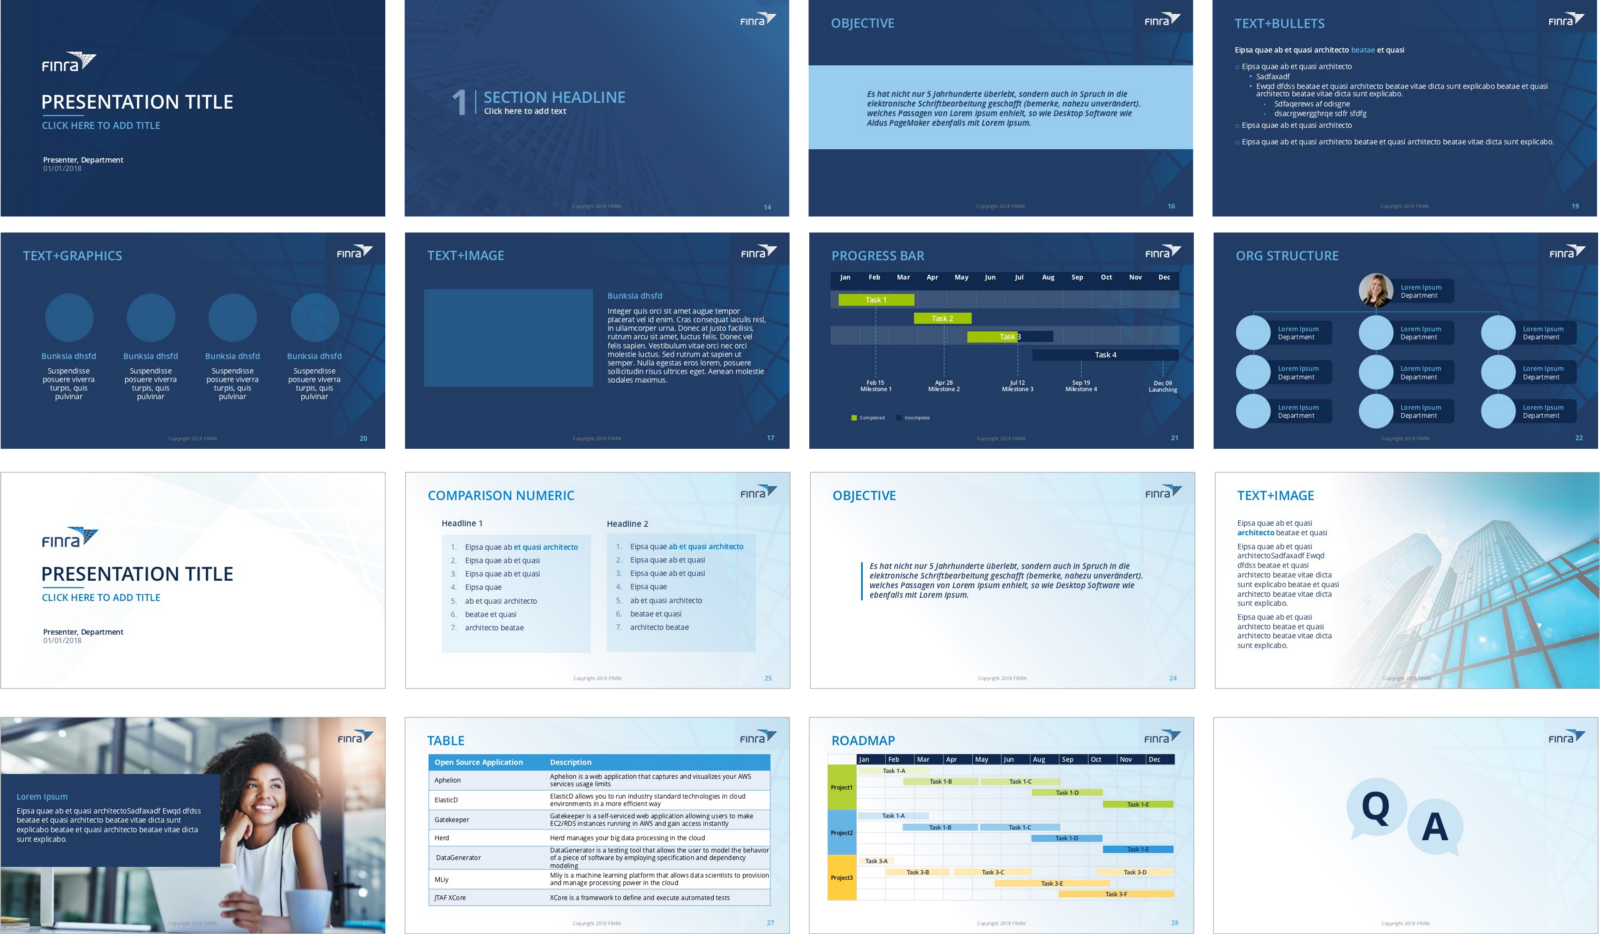 Snapshot of the Template